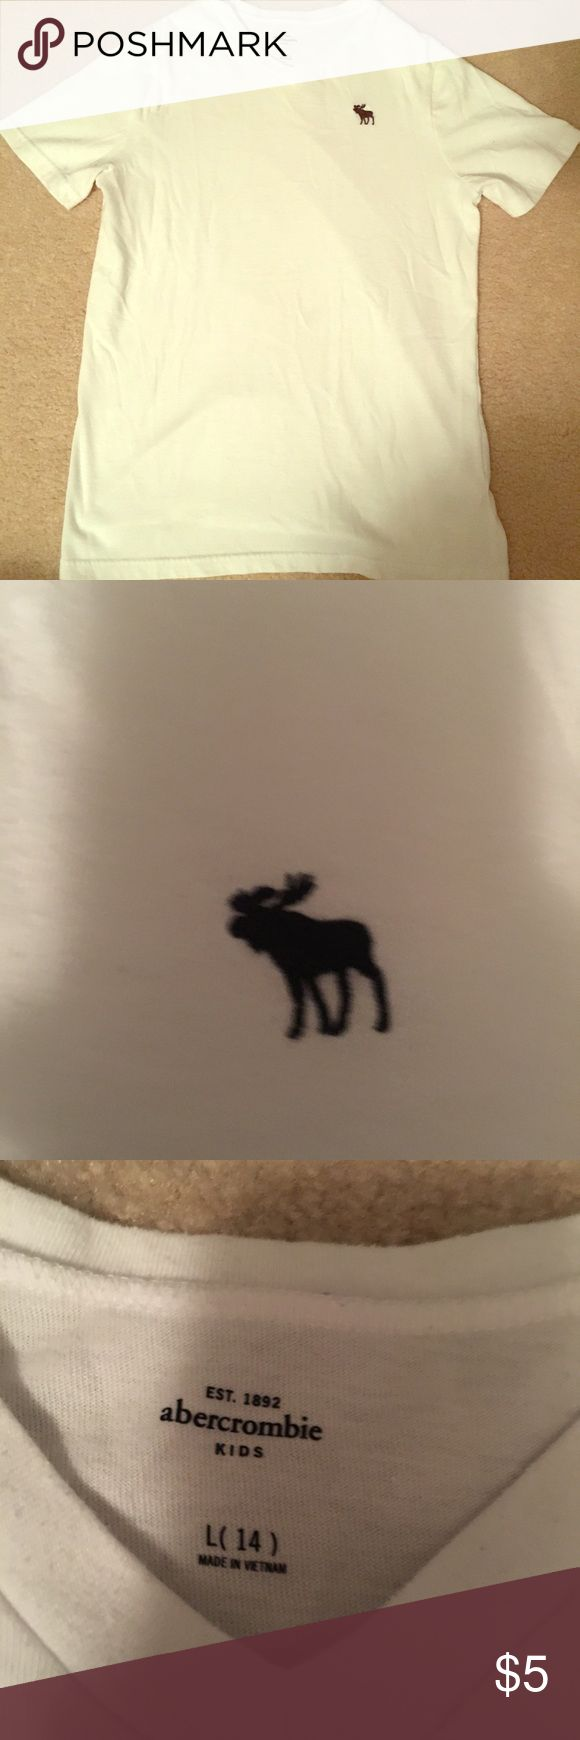 🆕abercrombie kids icon v-neck tee White abercrombie kids icon v-neck tee. Signature moose logo in navy. Some slight pilling.   ➳SAME OR NEXT DAY SHIPPING                                        ➳No trades, thank you!  ➳Make me an offer! ➳Lowballs declined ➳Ask questions BEFORE purchasing! abercrombie kids Shirts & Tops Tees - Short Sleeve